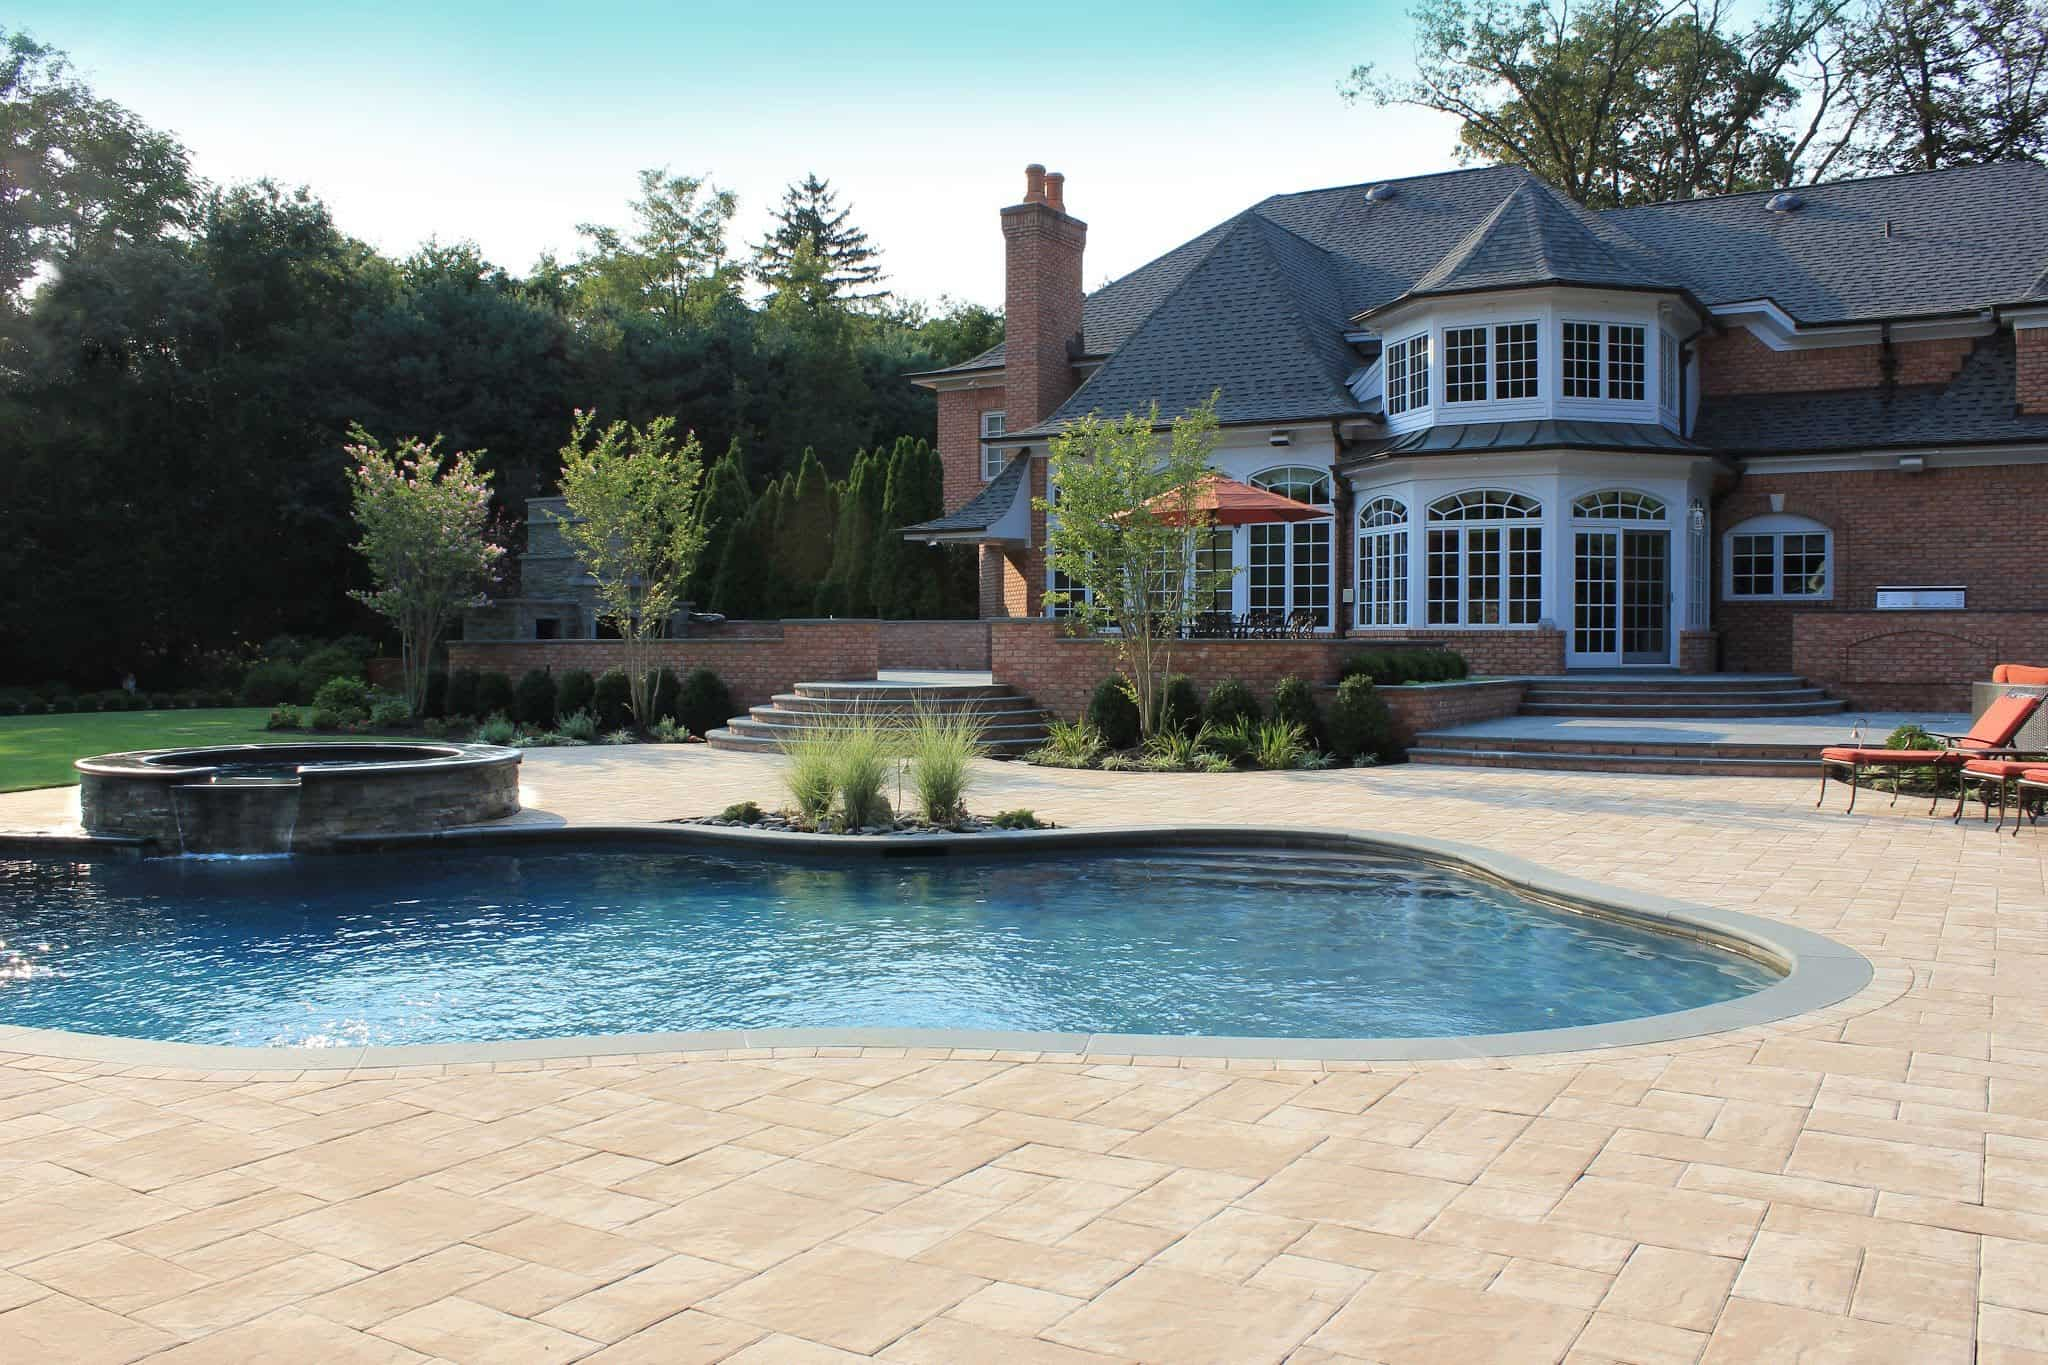 Paver Patio   Nicolock Pool Patio   Travertina   Random Pattern   Old  Westbury, Long